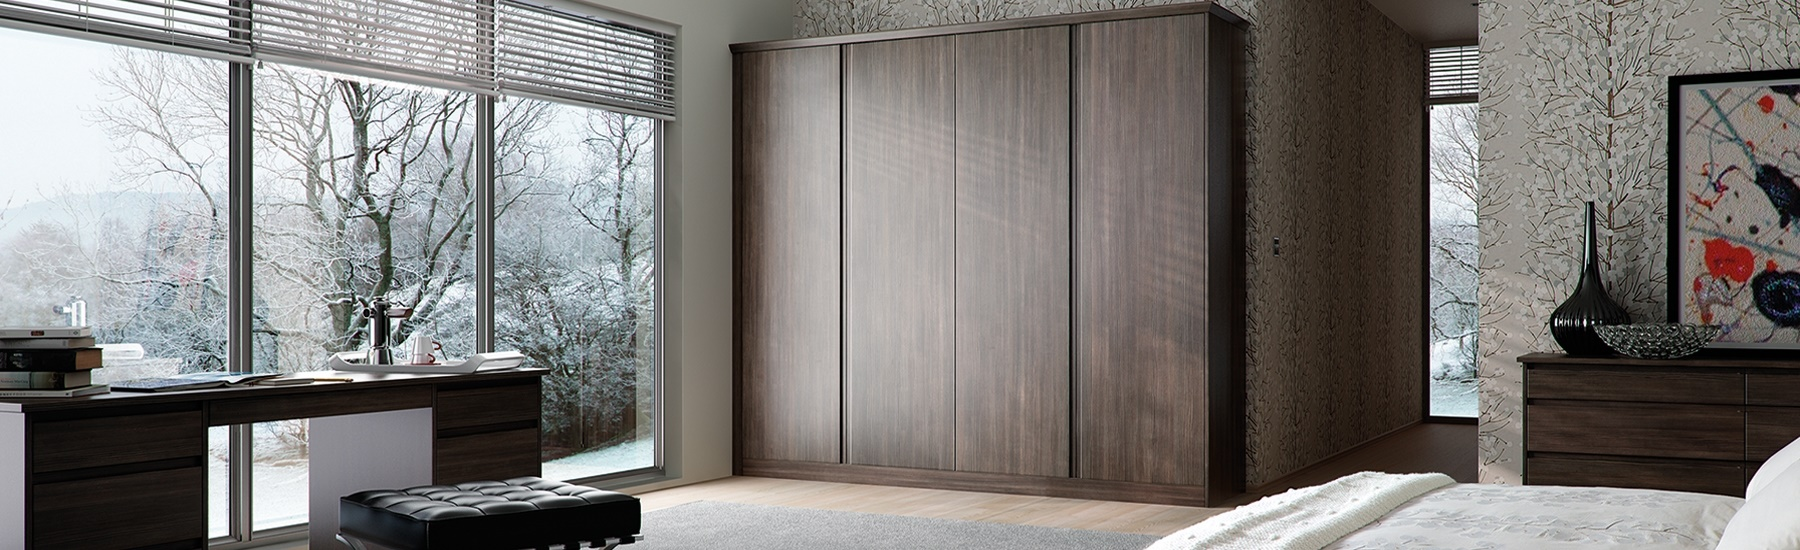 replacement wardrobe doors made to measure doors sincerely. Black Bedroom Furniture Sets. Home Design Ideas